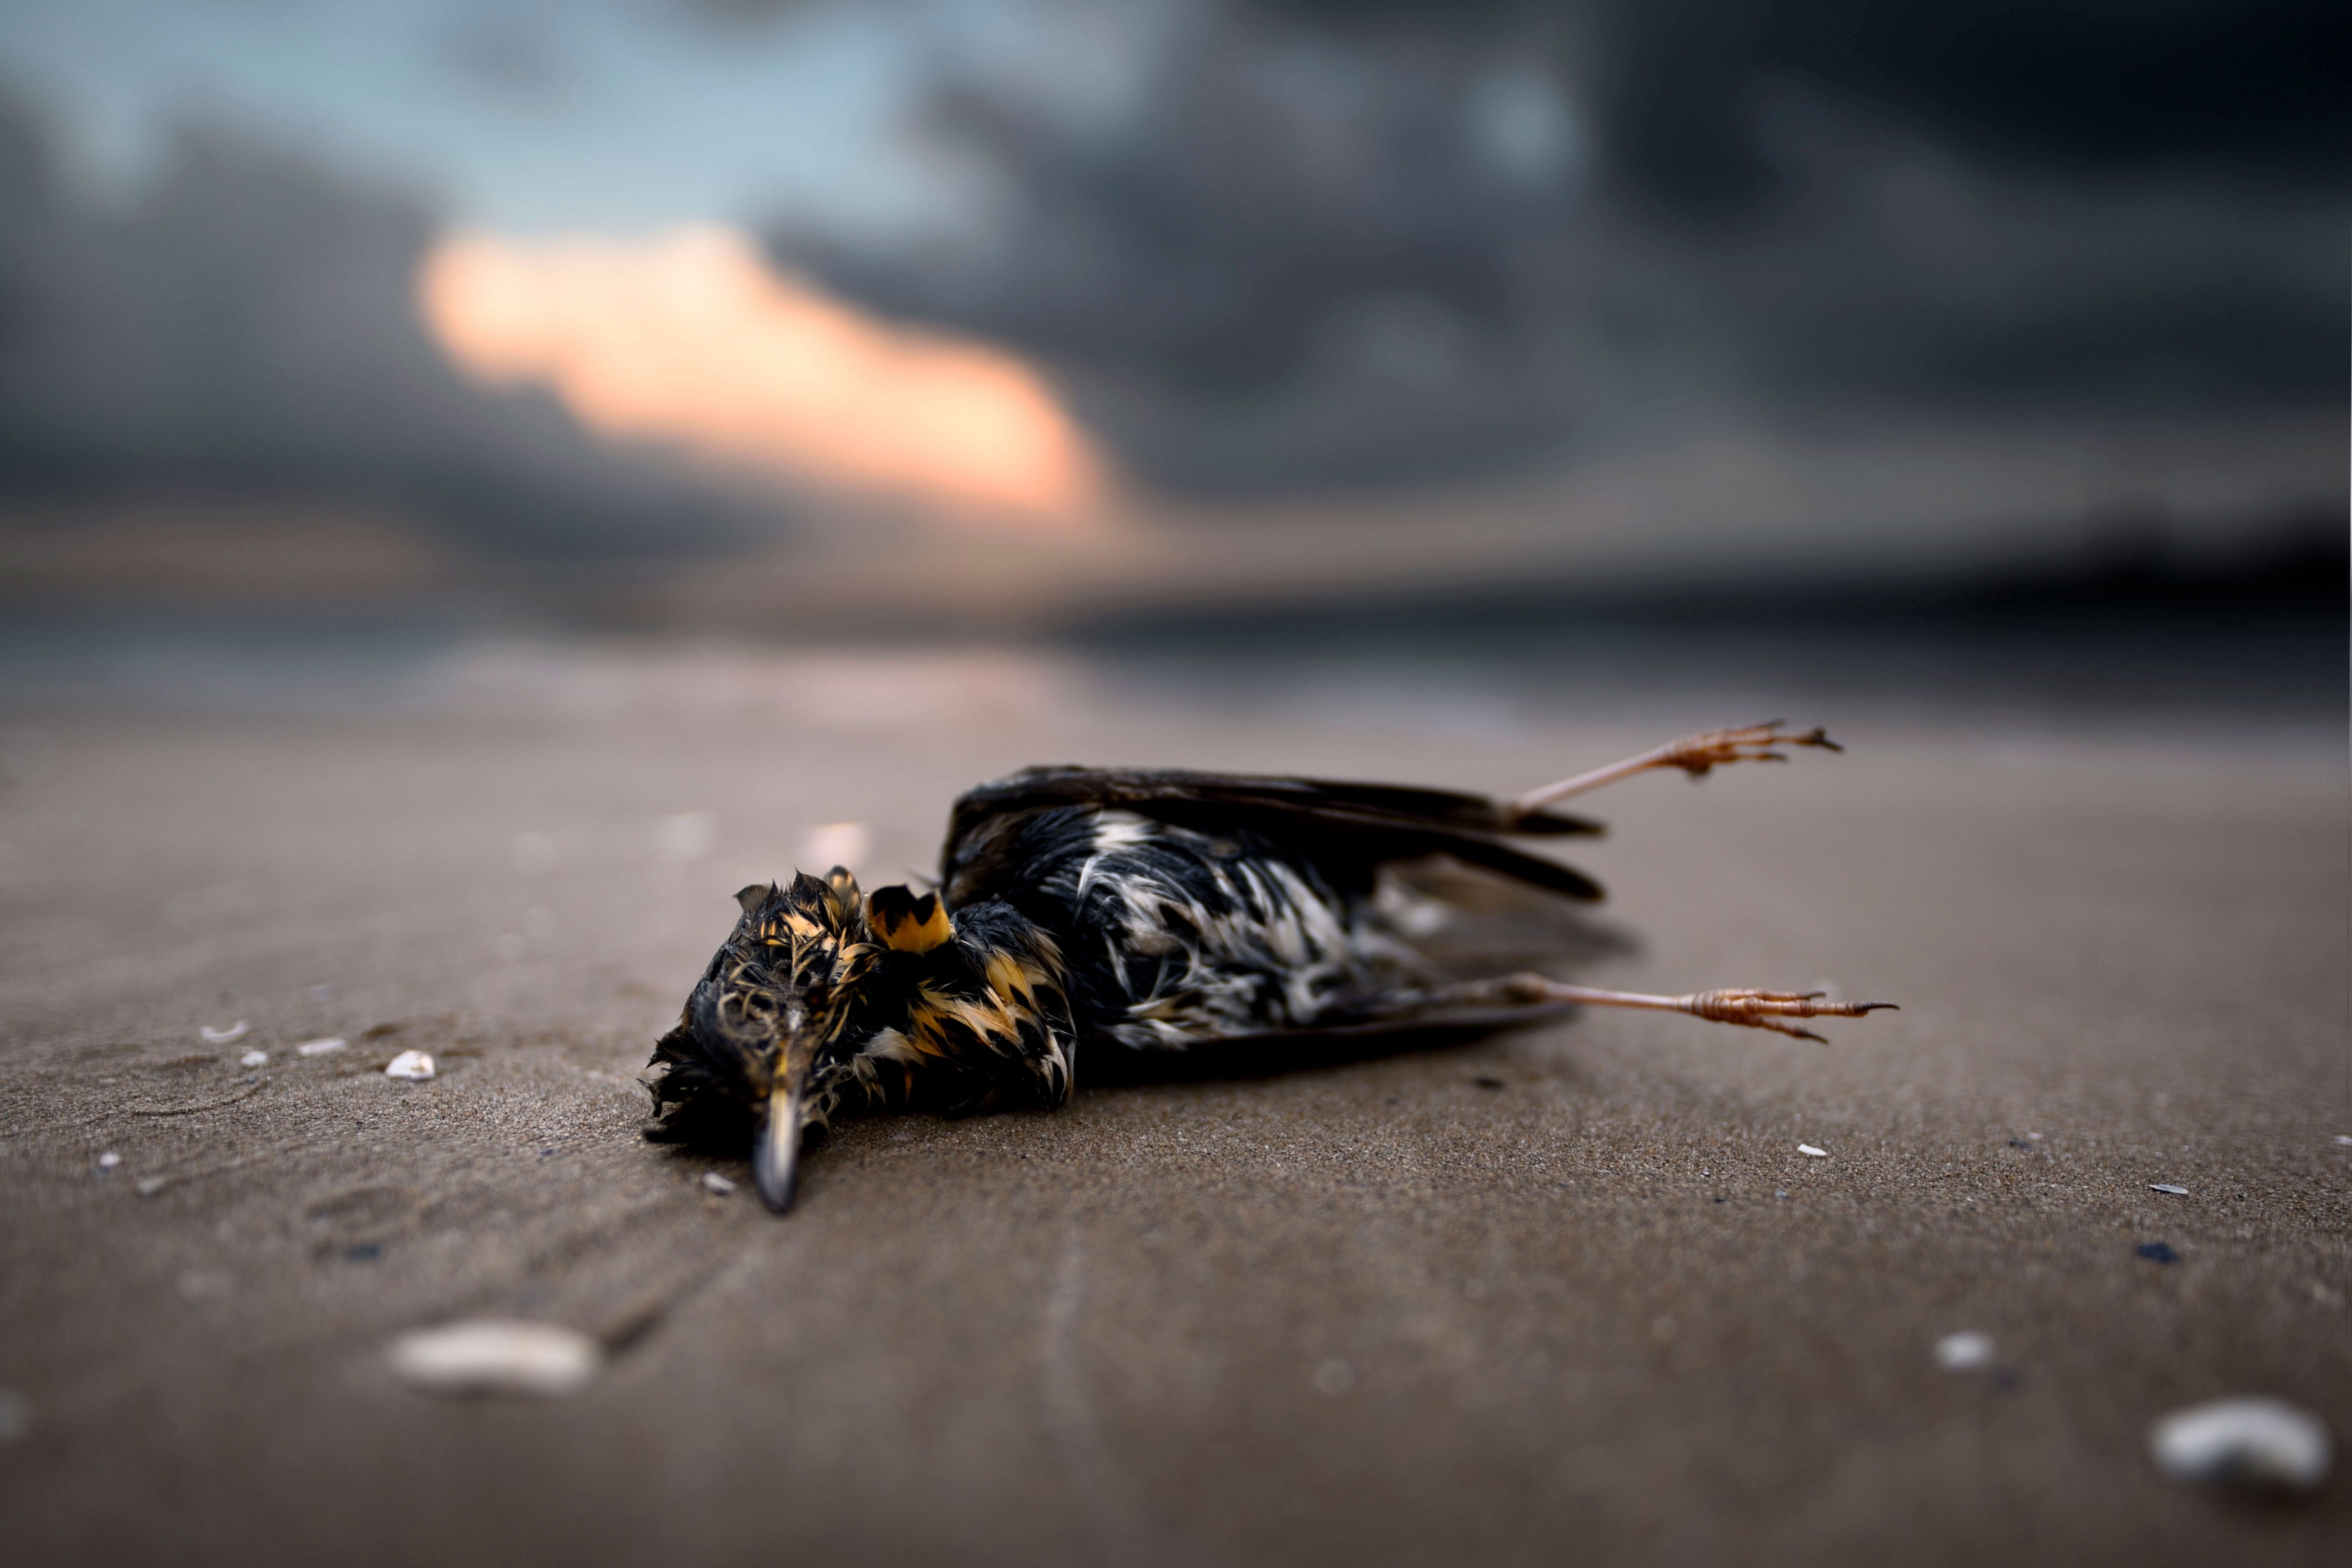 The corpse of a small bird on a beach with white and dark feathers